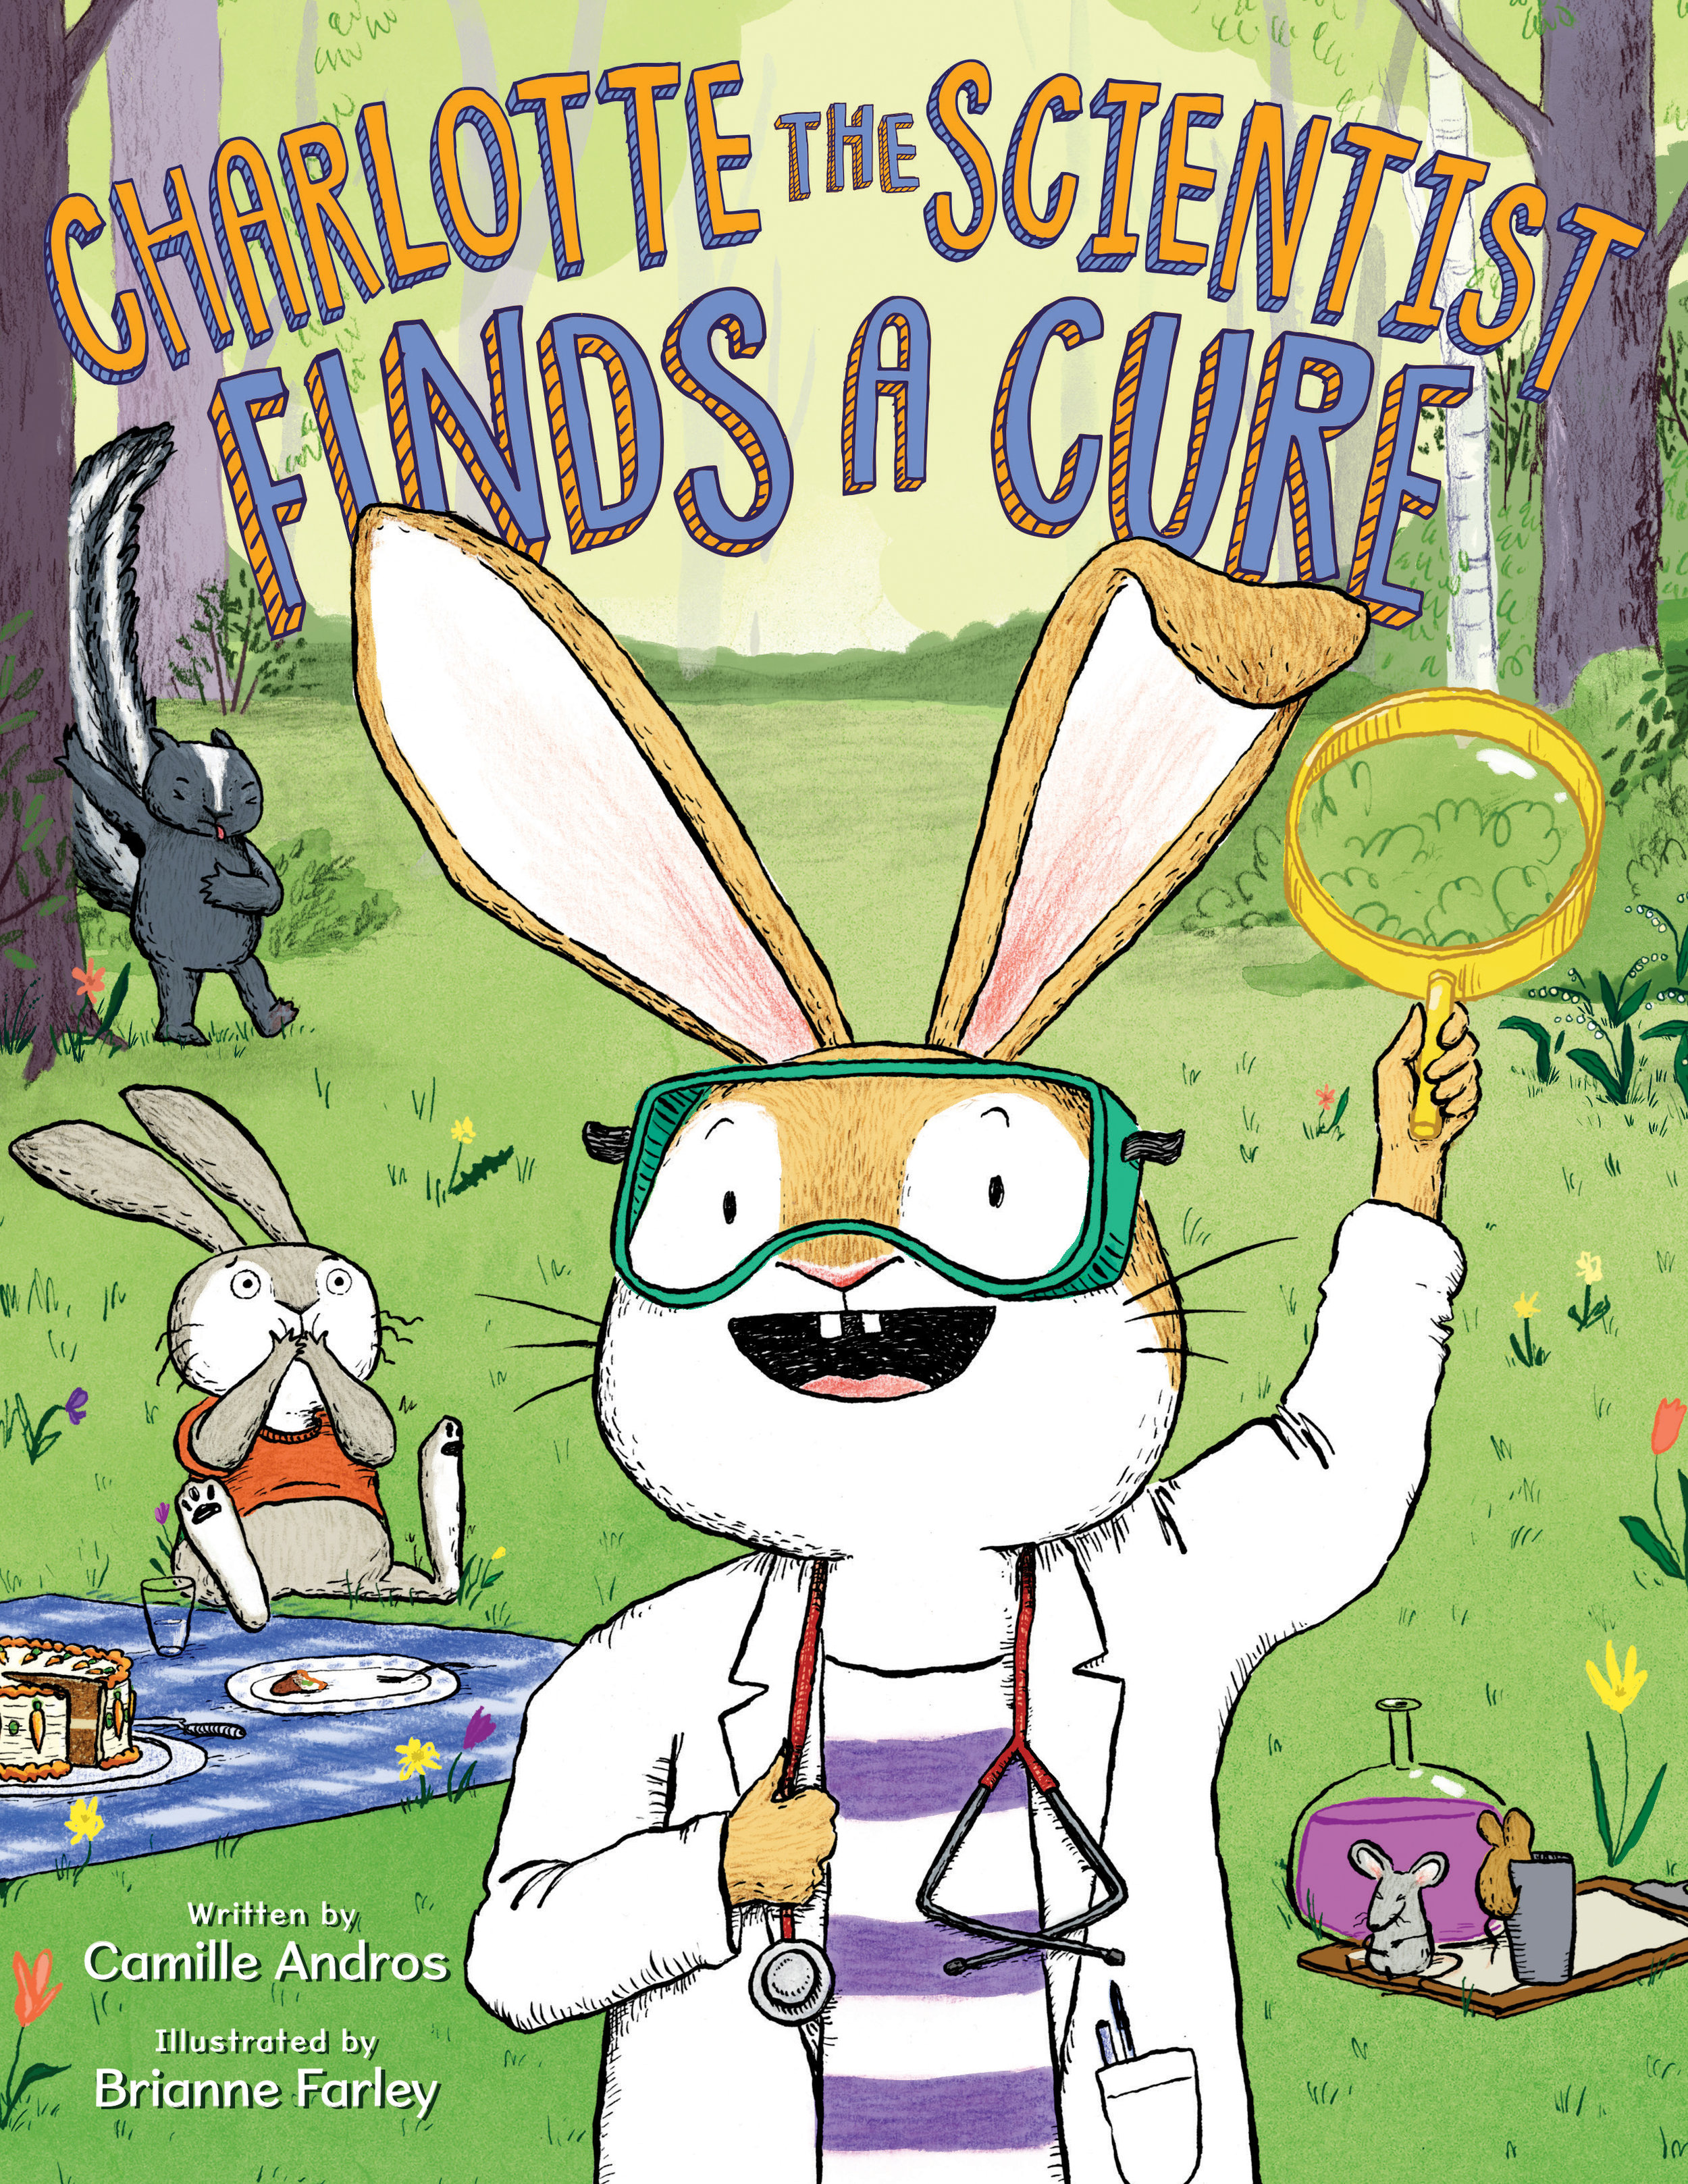 Andros, Camille 2019_03 CHARLOTTE THE SCIENTIST FINDS A CURE - PB - RLM LK & PR - Copy.jpg